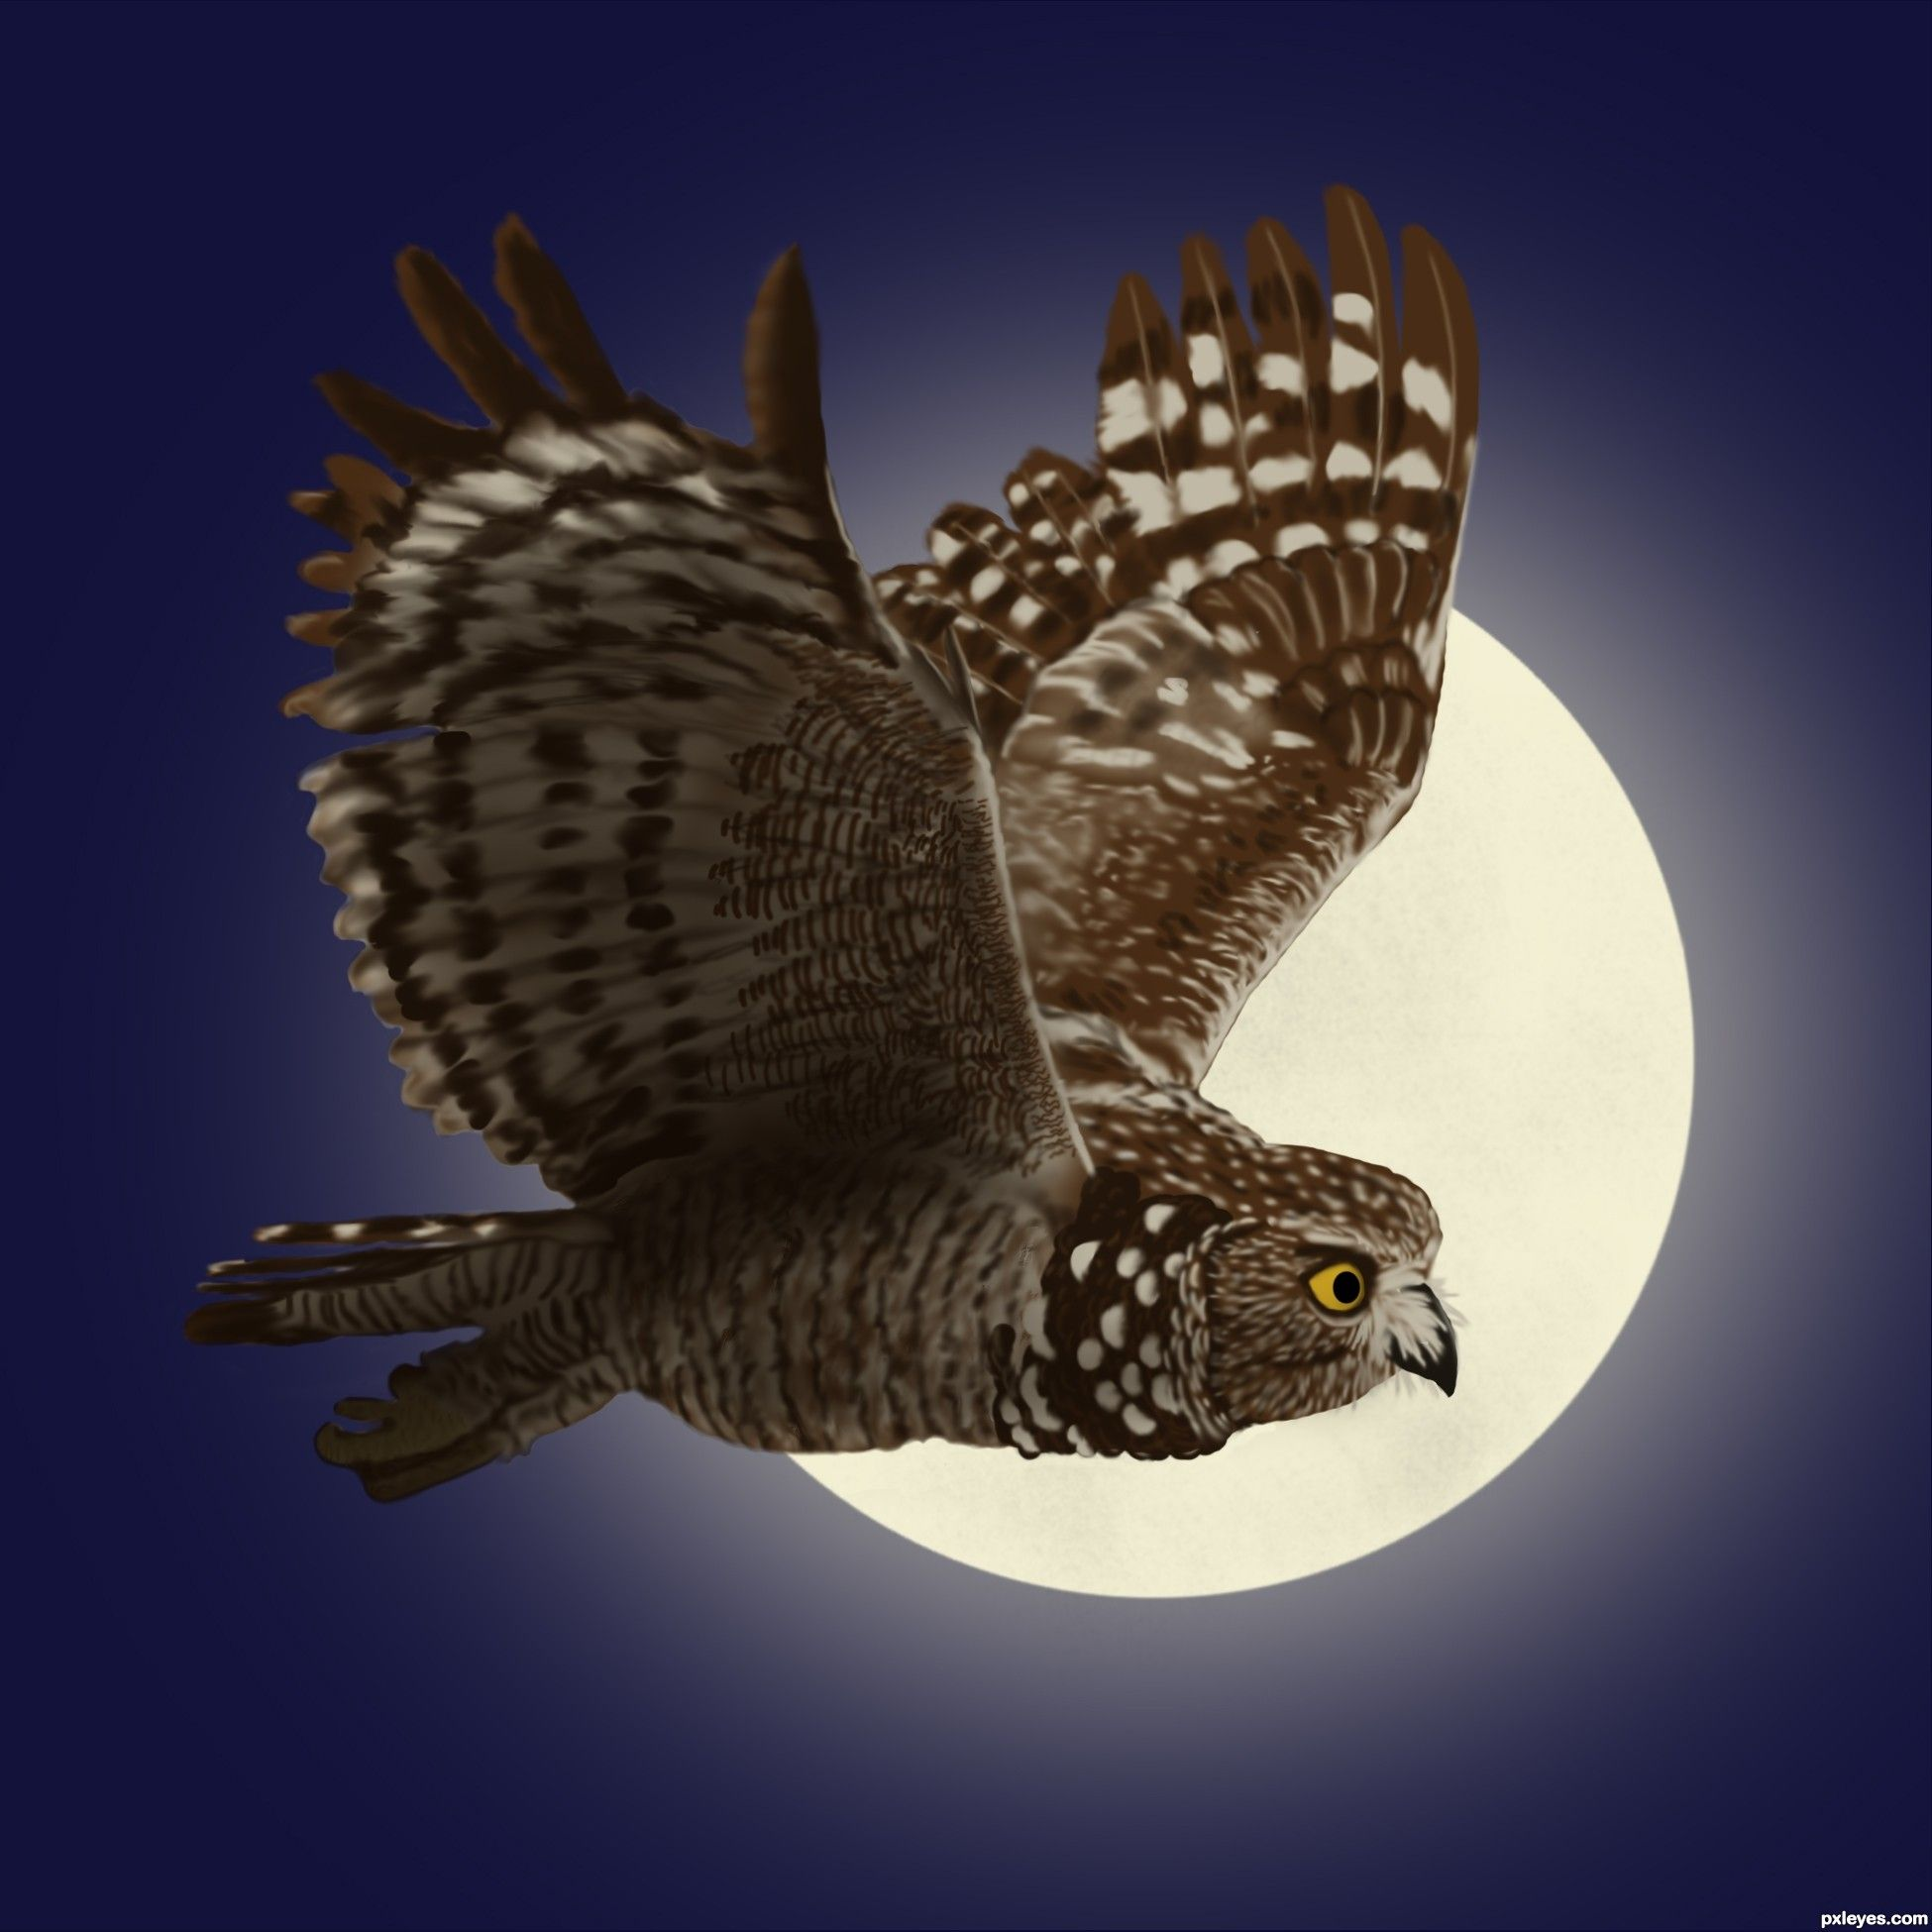 Owl Flying At Night Aol Image Search Results Creatures Of The